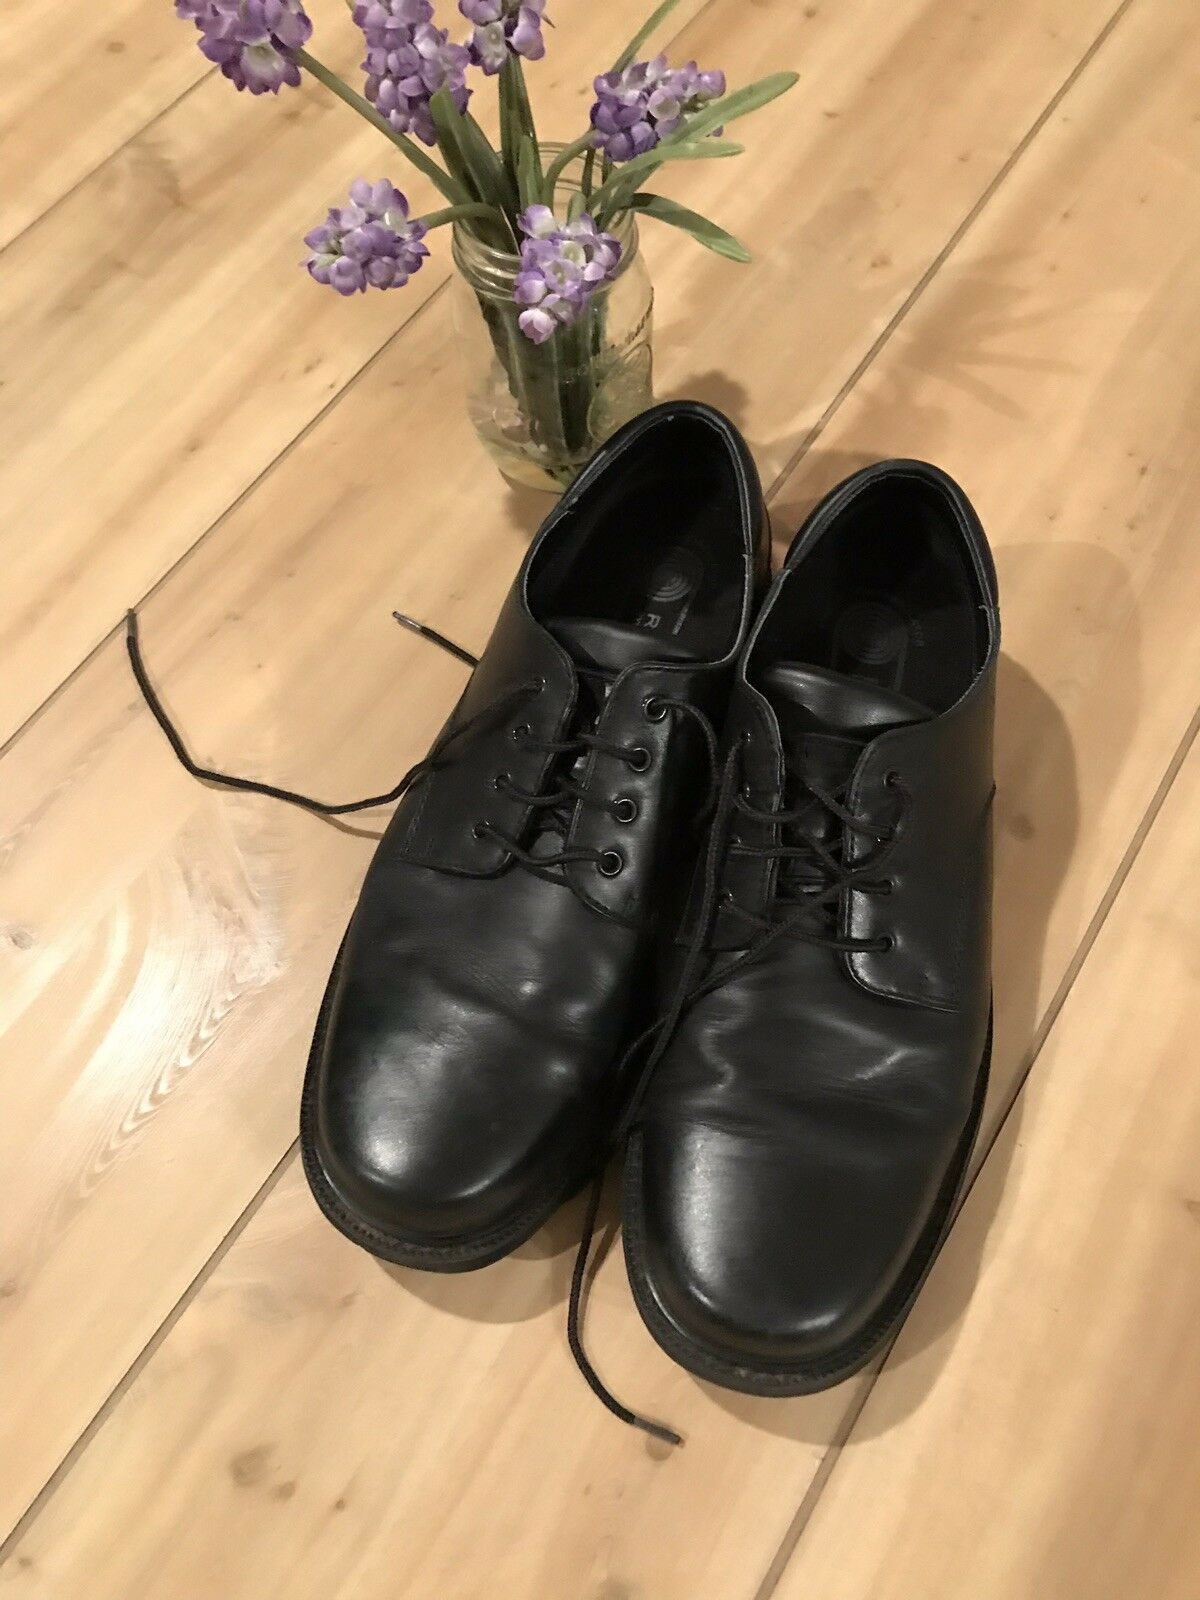 MENS ROCKPORT WATERPROOF Black LEATHER OXFORDS SHOES size 11.5 W Hydro-Shield